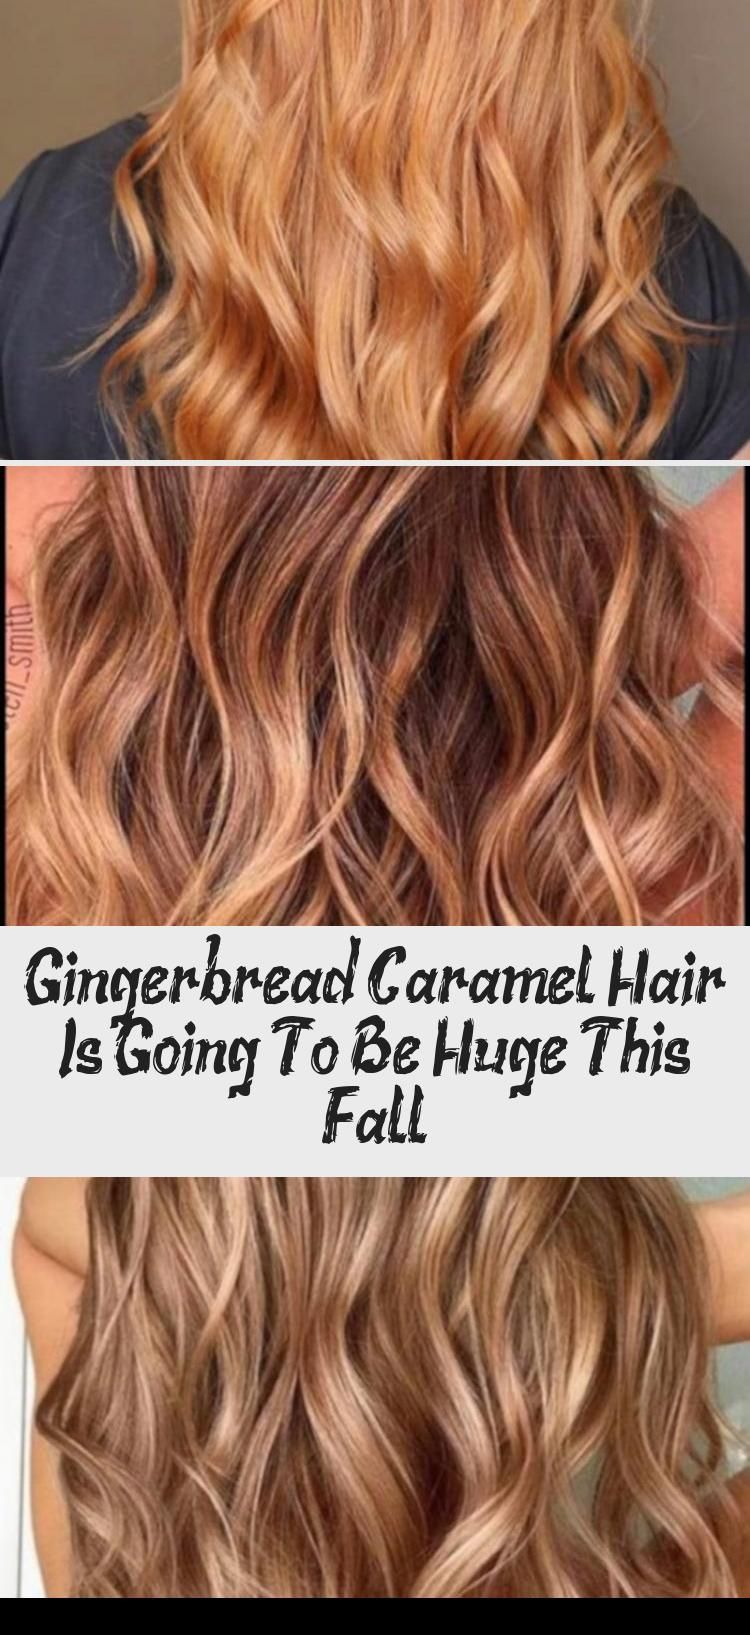 Gingerbread Caramel Hair is Going to Be Huge This Fall ...